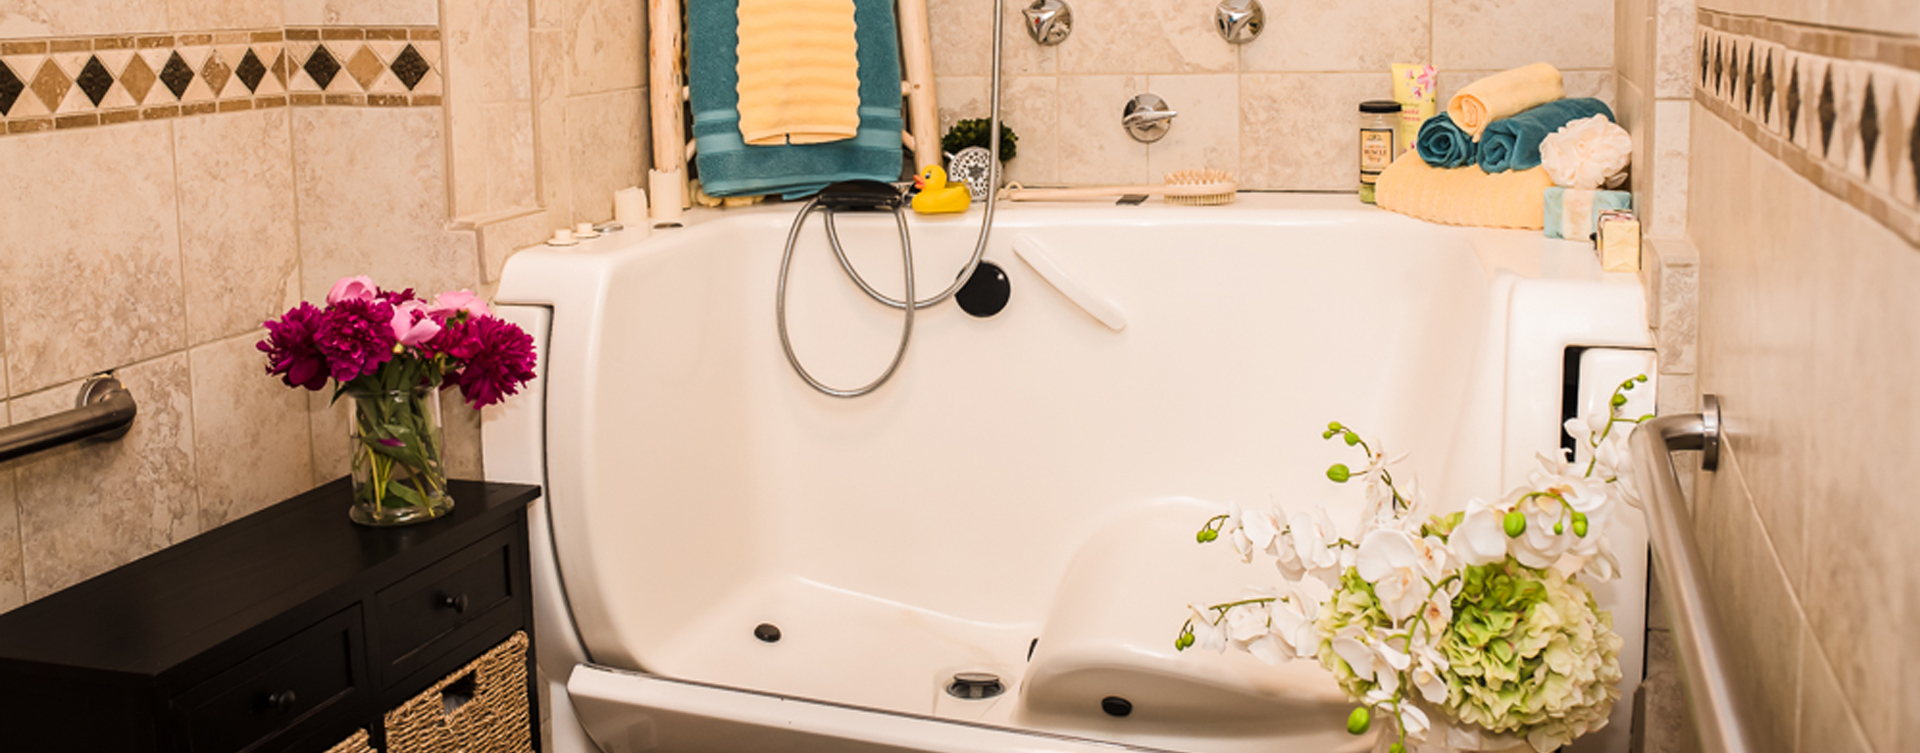 Hydrotherapy eases achy joints in our whirlpool at Bickford of Sioux City